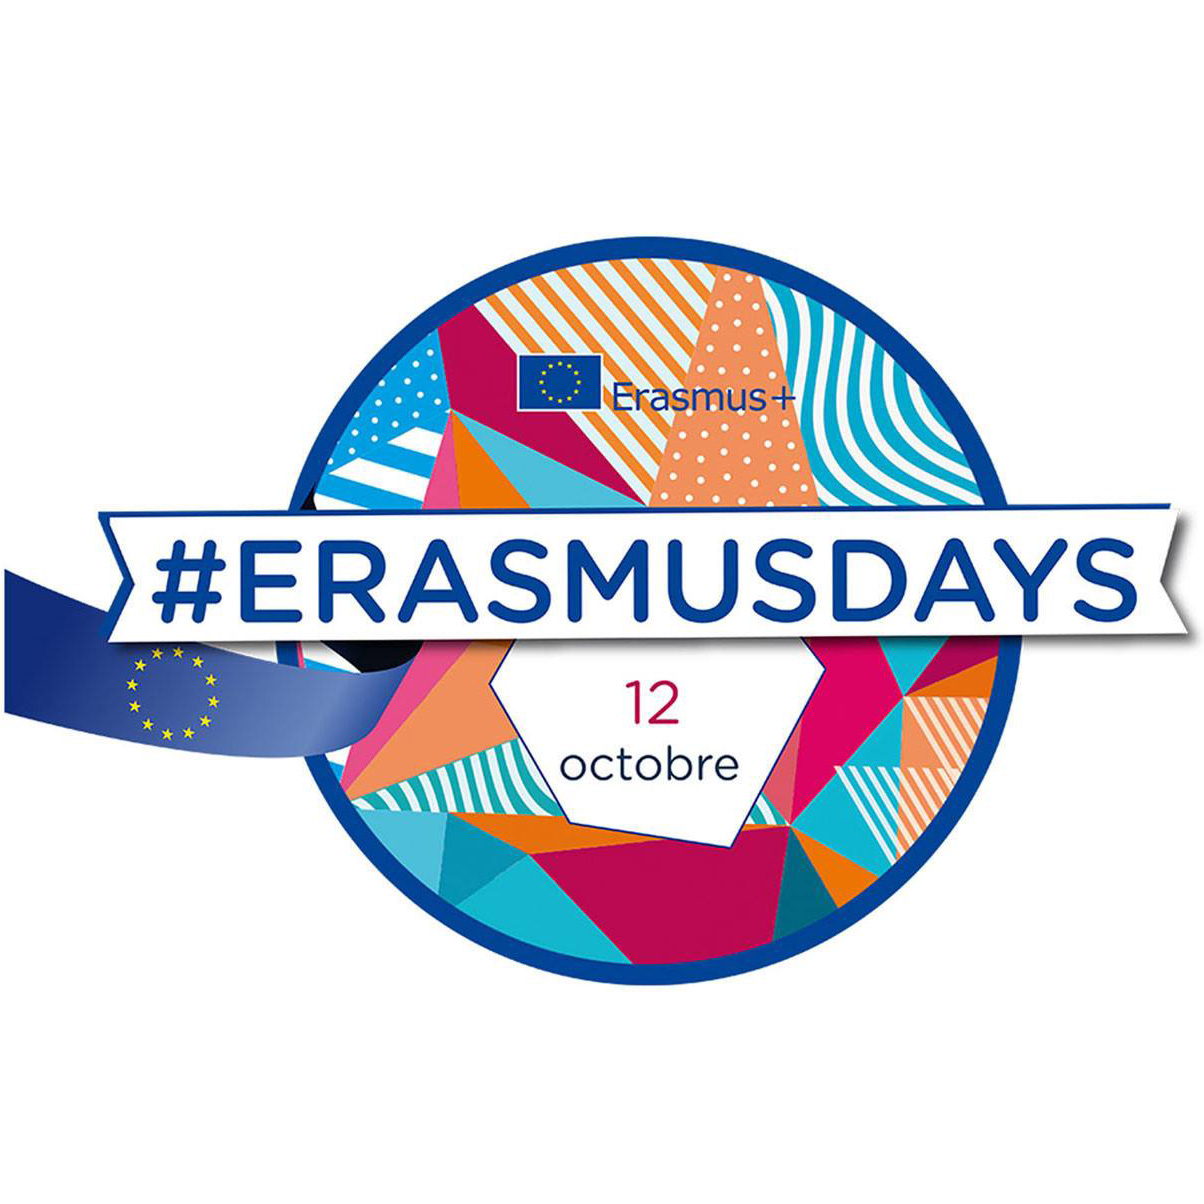 #ERASMUSDAYS | 12 octobre